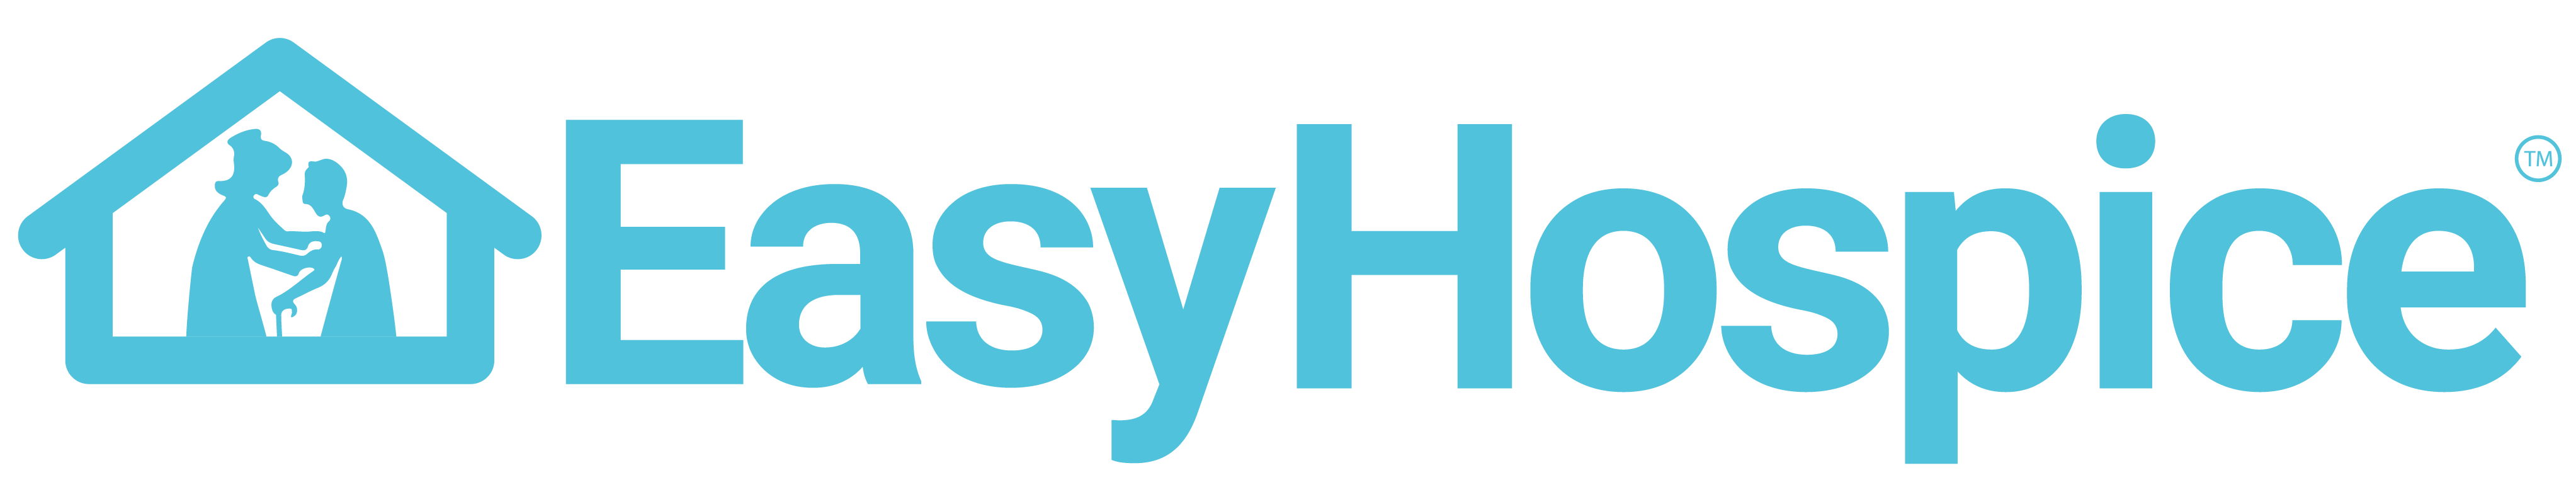 EasyHospice